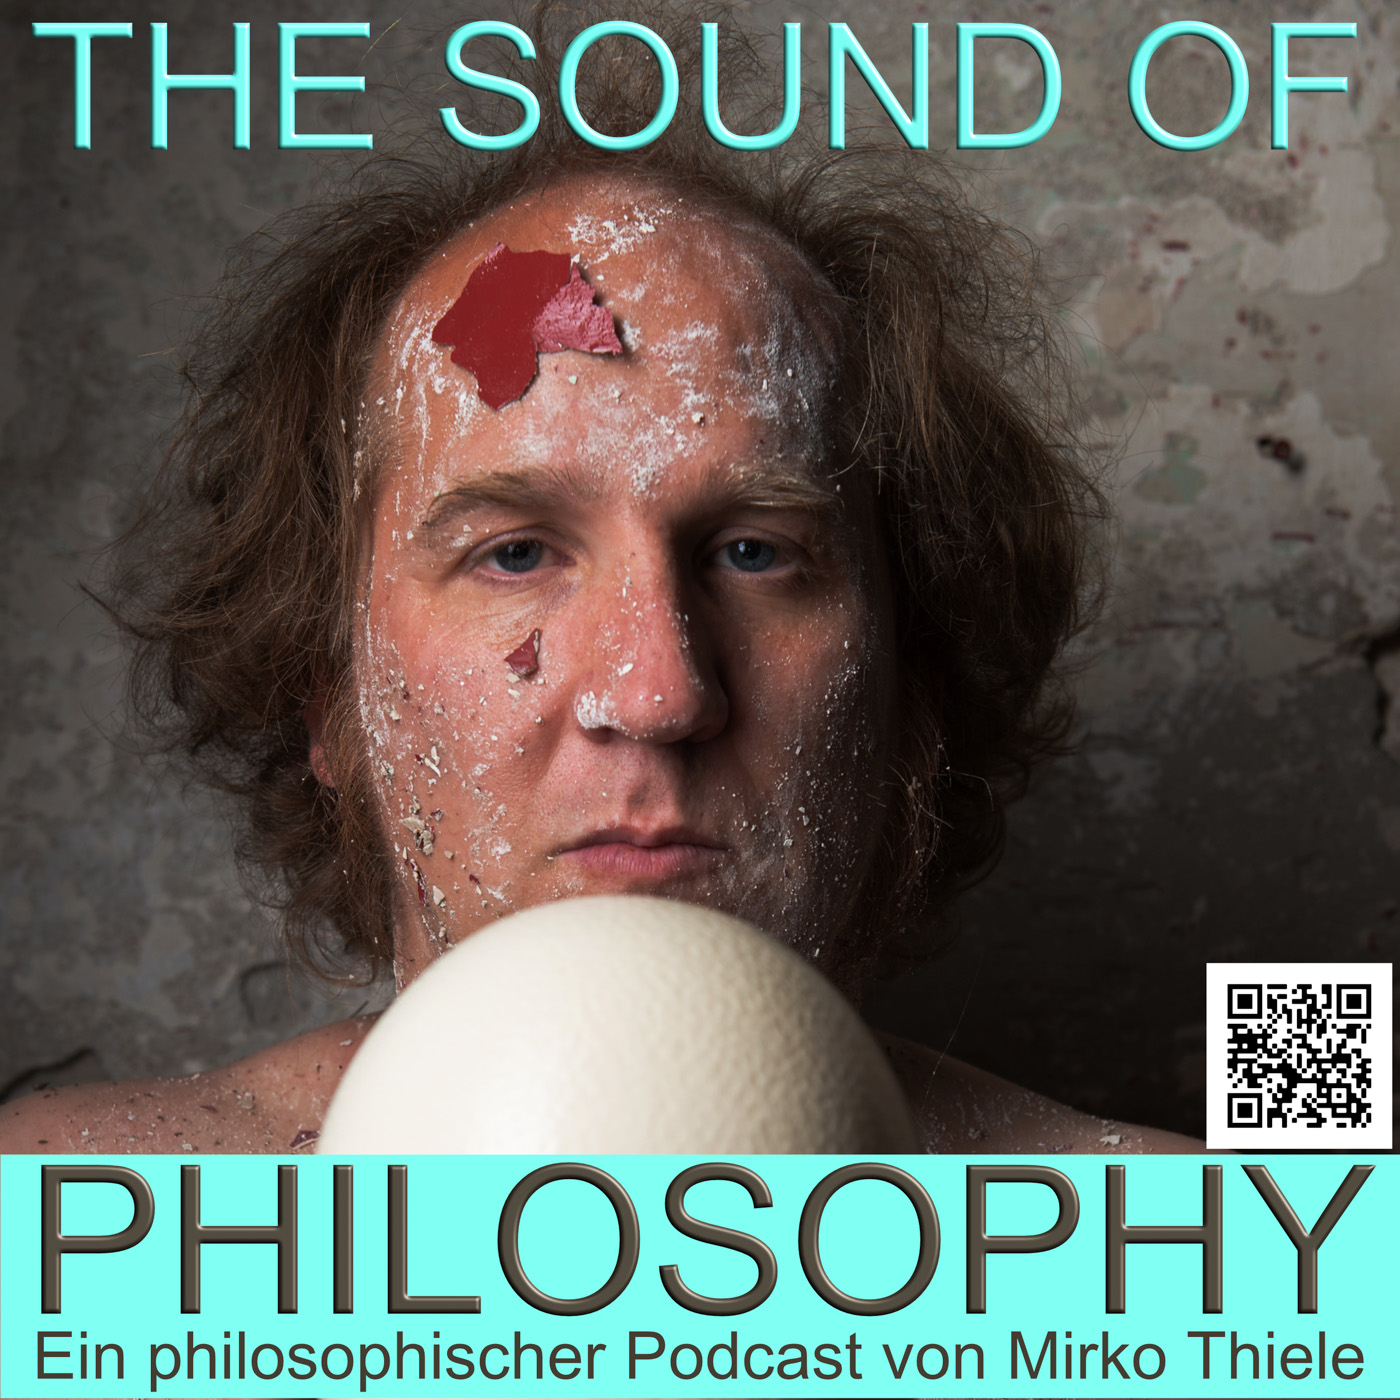 The Sound of Philosophy